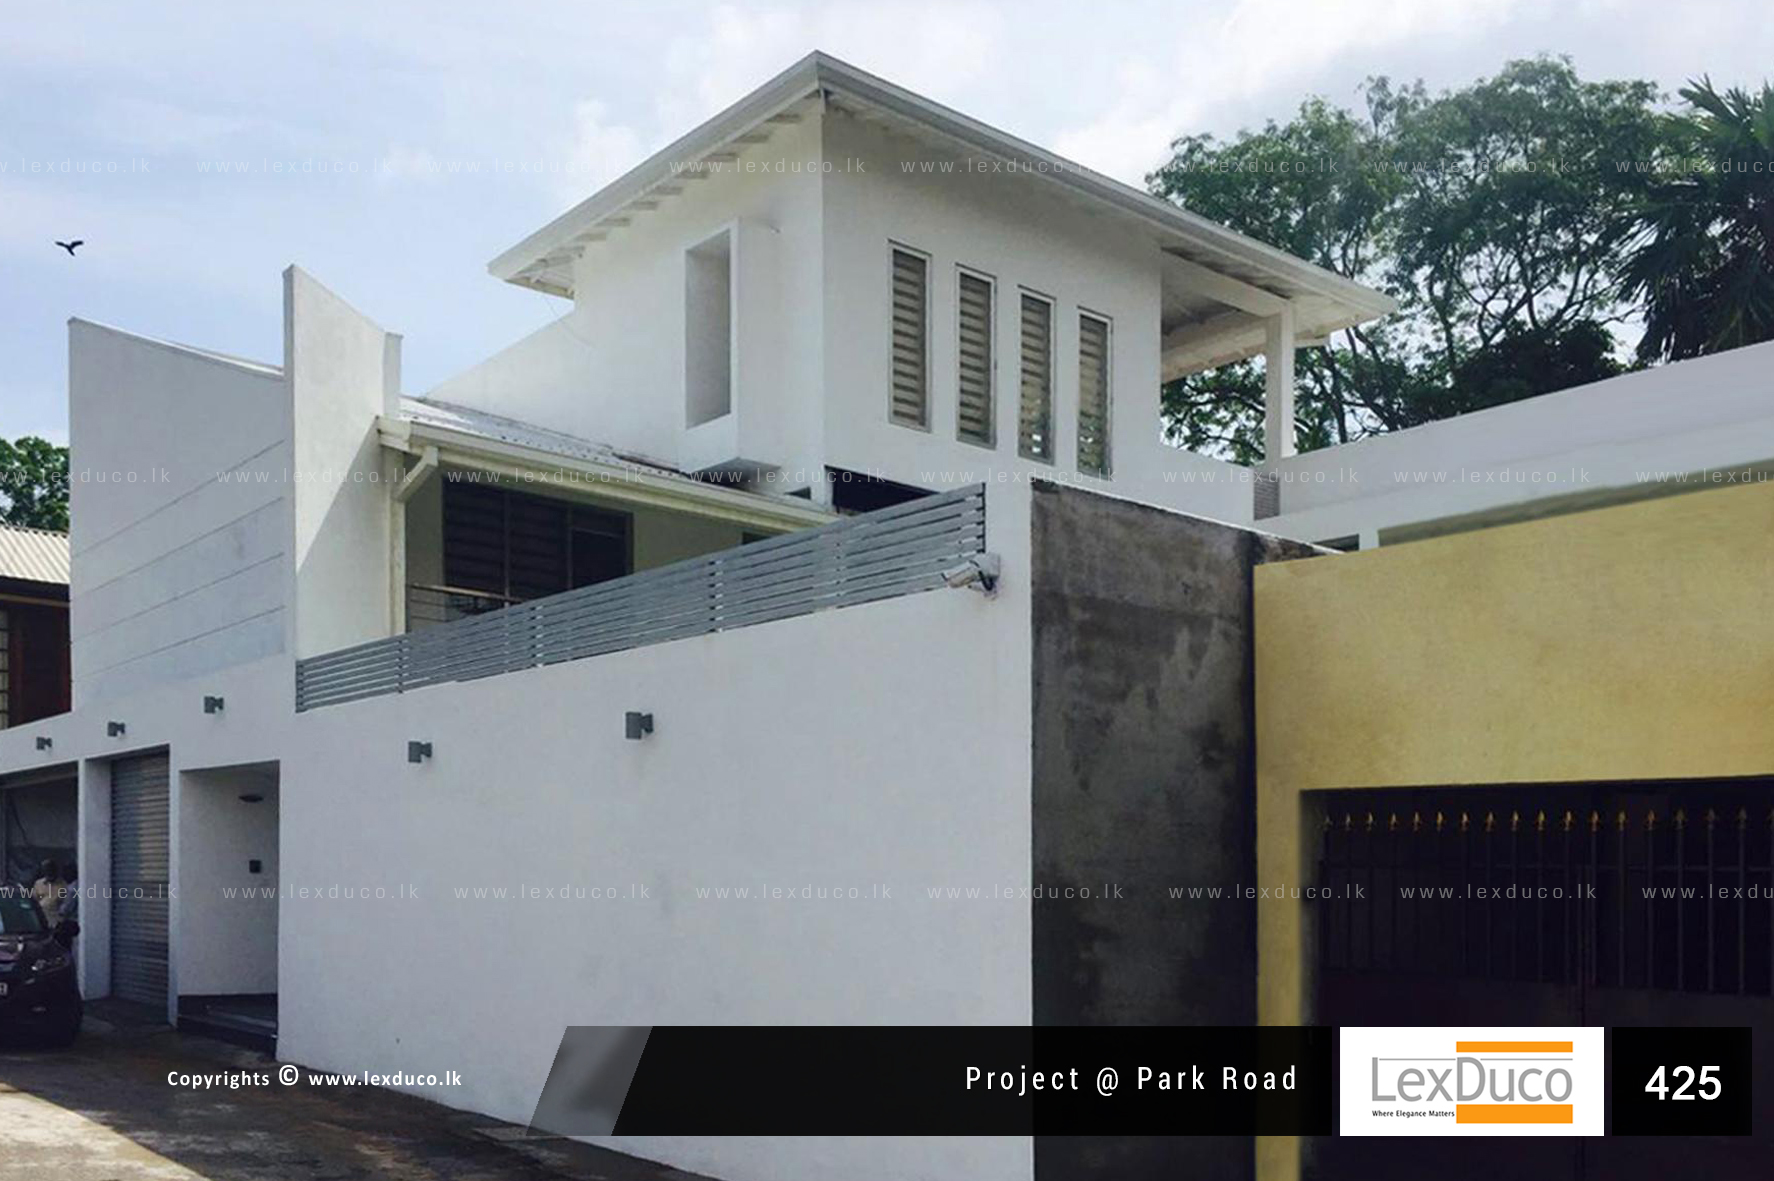 Residential Housing Project at Park Road | Lex Duco